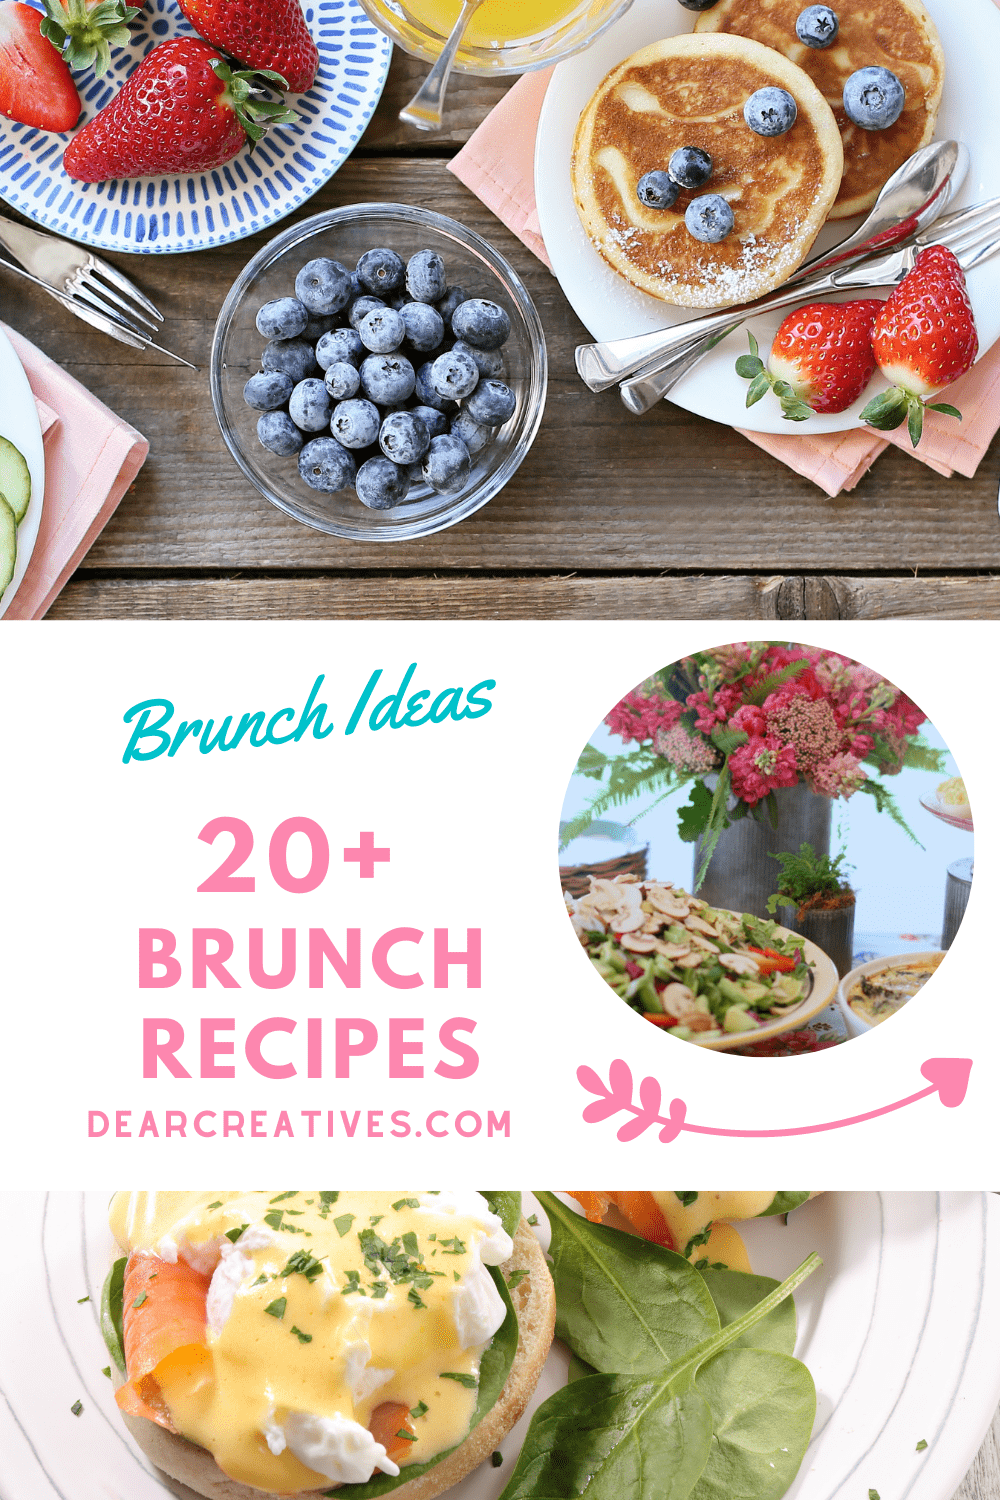 Brunch Recipe Ideas – 20+ Recipes To Make At Home!